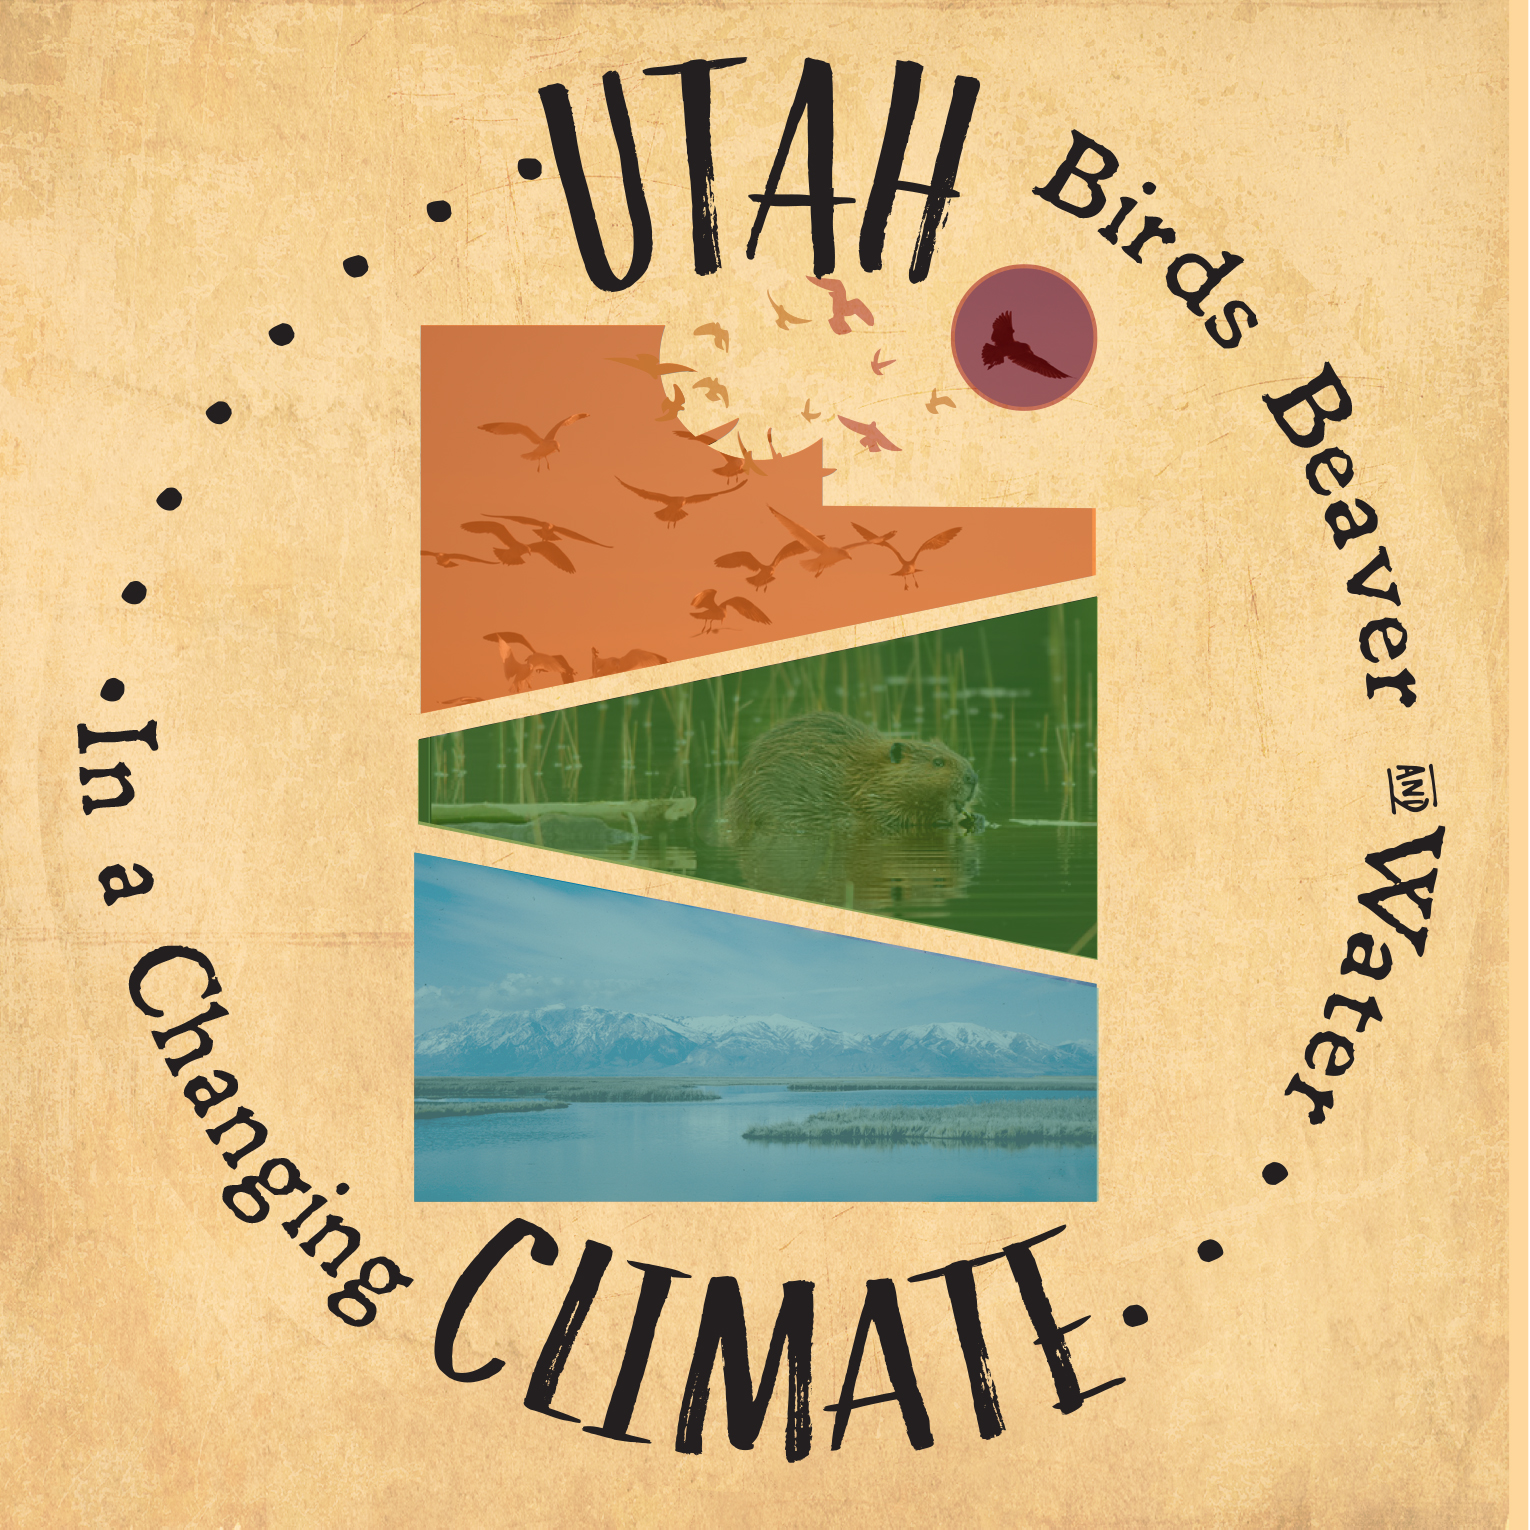 Utah Birds, Beaver, and Water in a Changing Climate logo